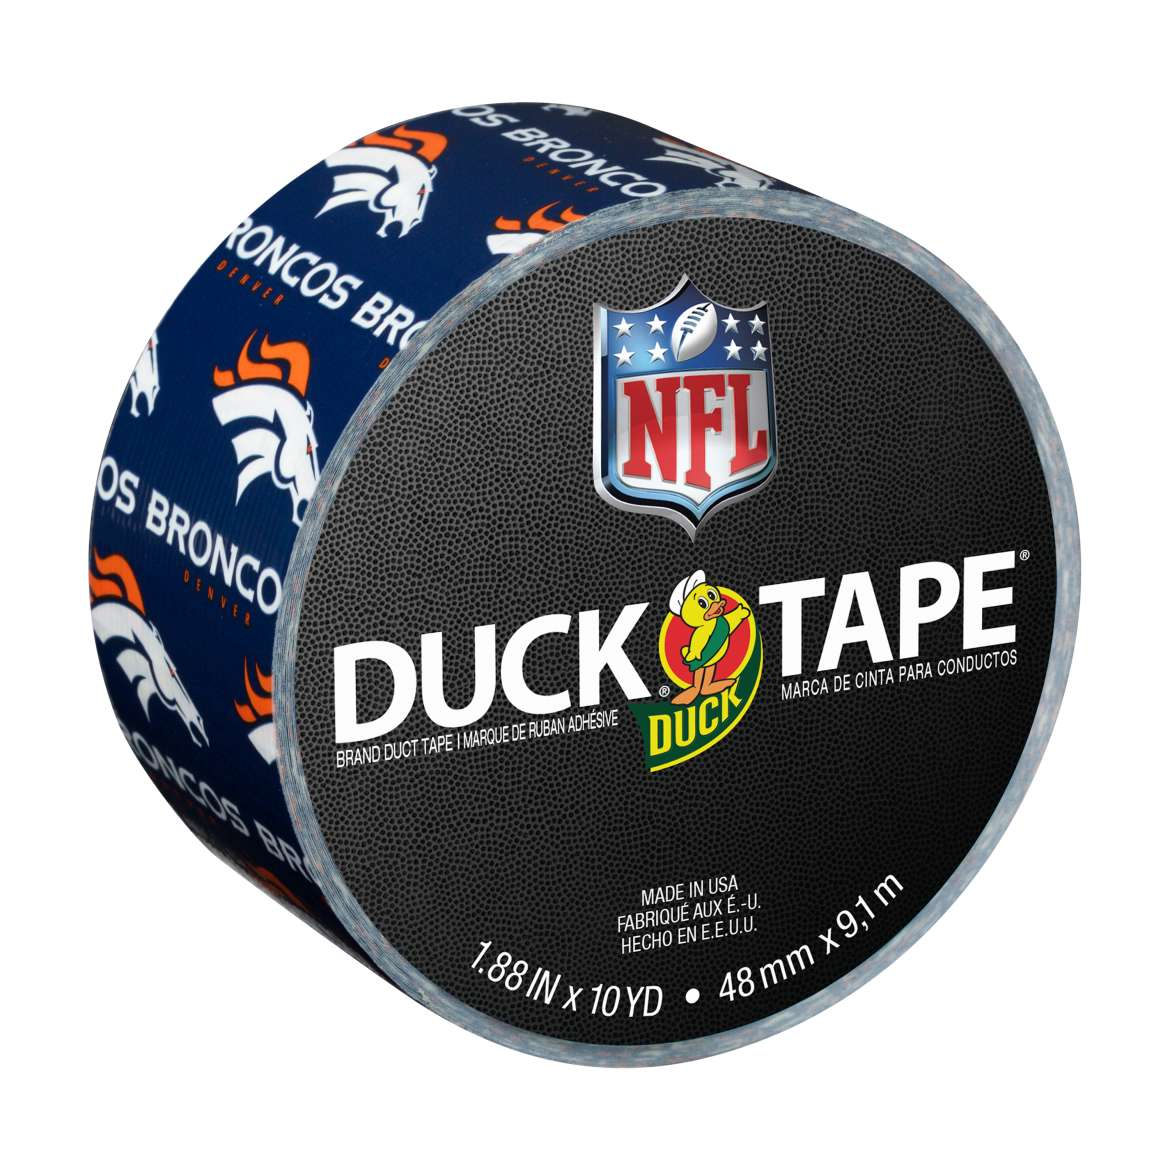 NFL Licensed Duck Tape Brand Duct Tape - Denver Broncos, 1.88 in. x 10 yd.